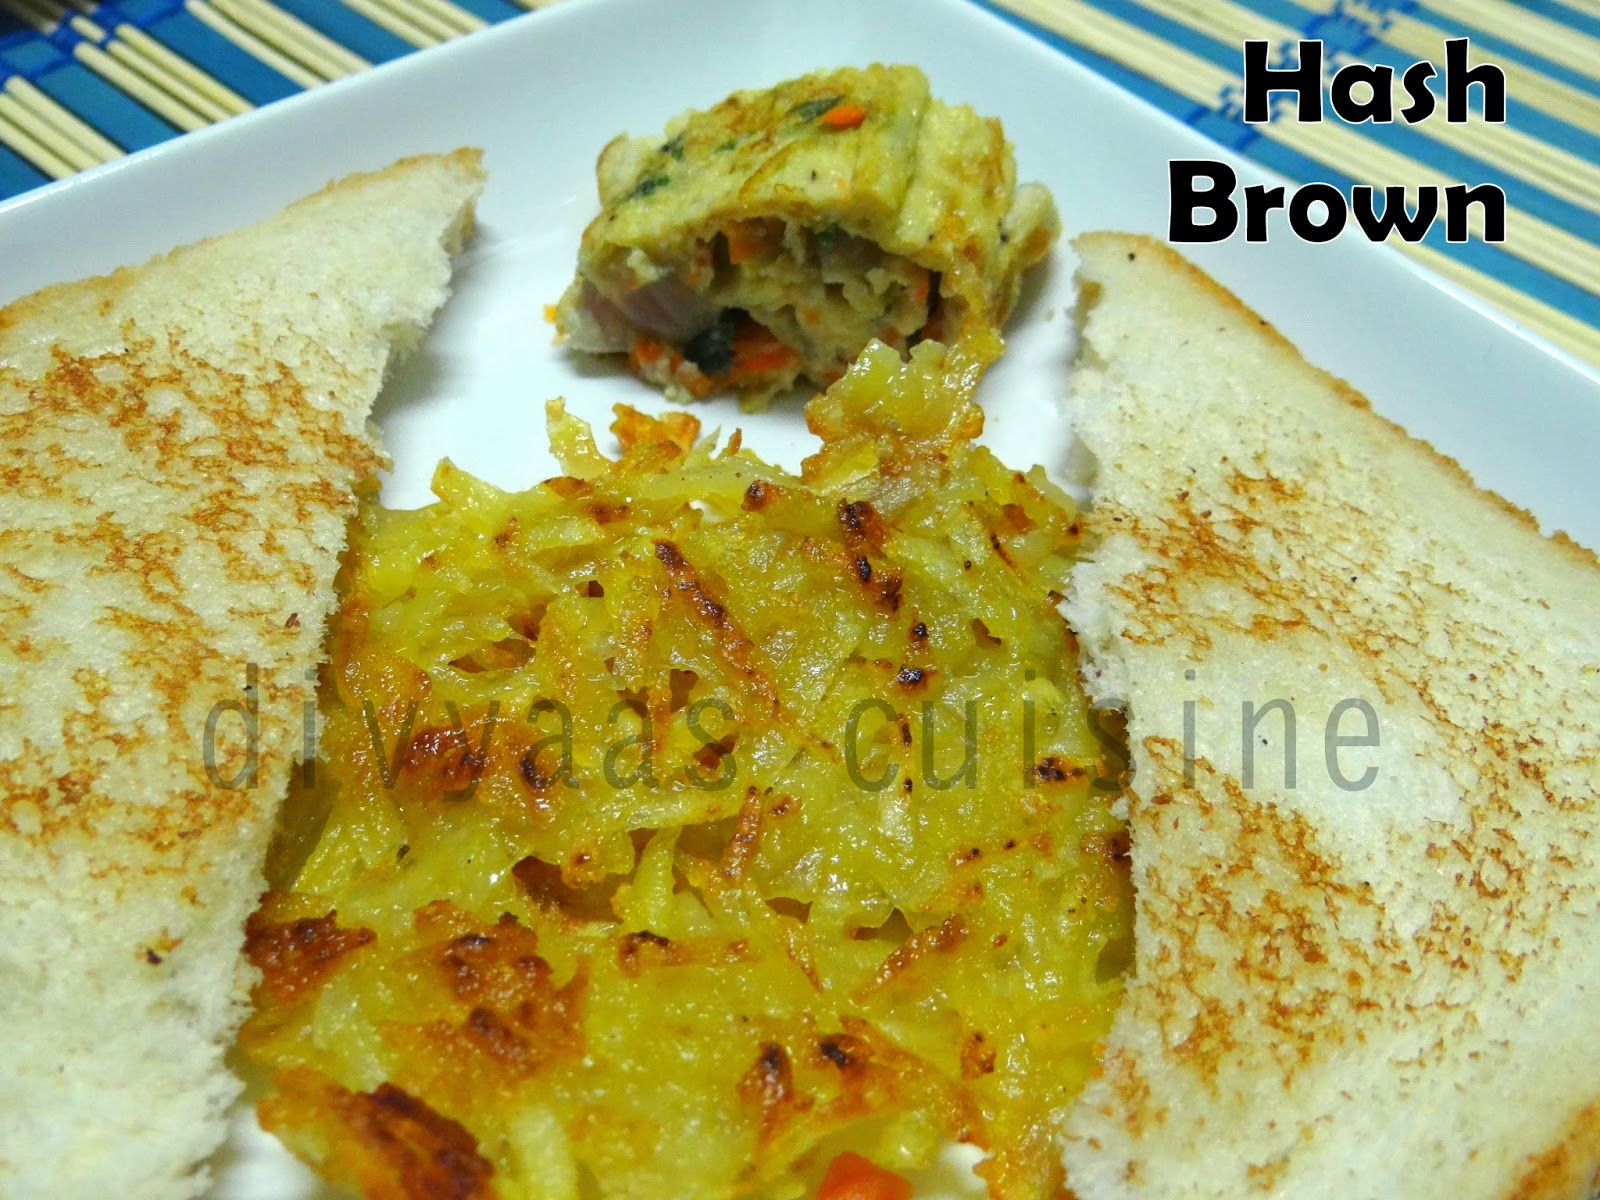 Hash Brown Potato Fry Egg Omelet Roll Bread Roast